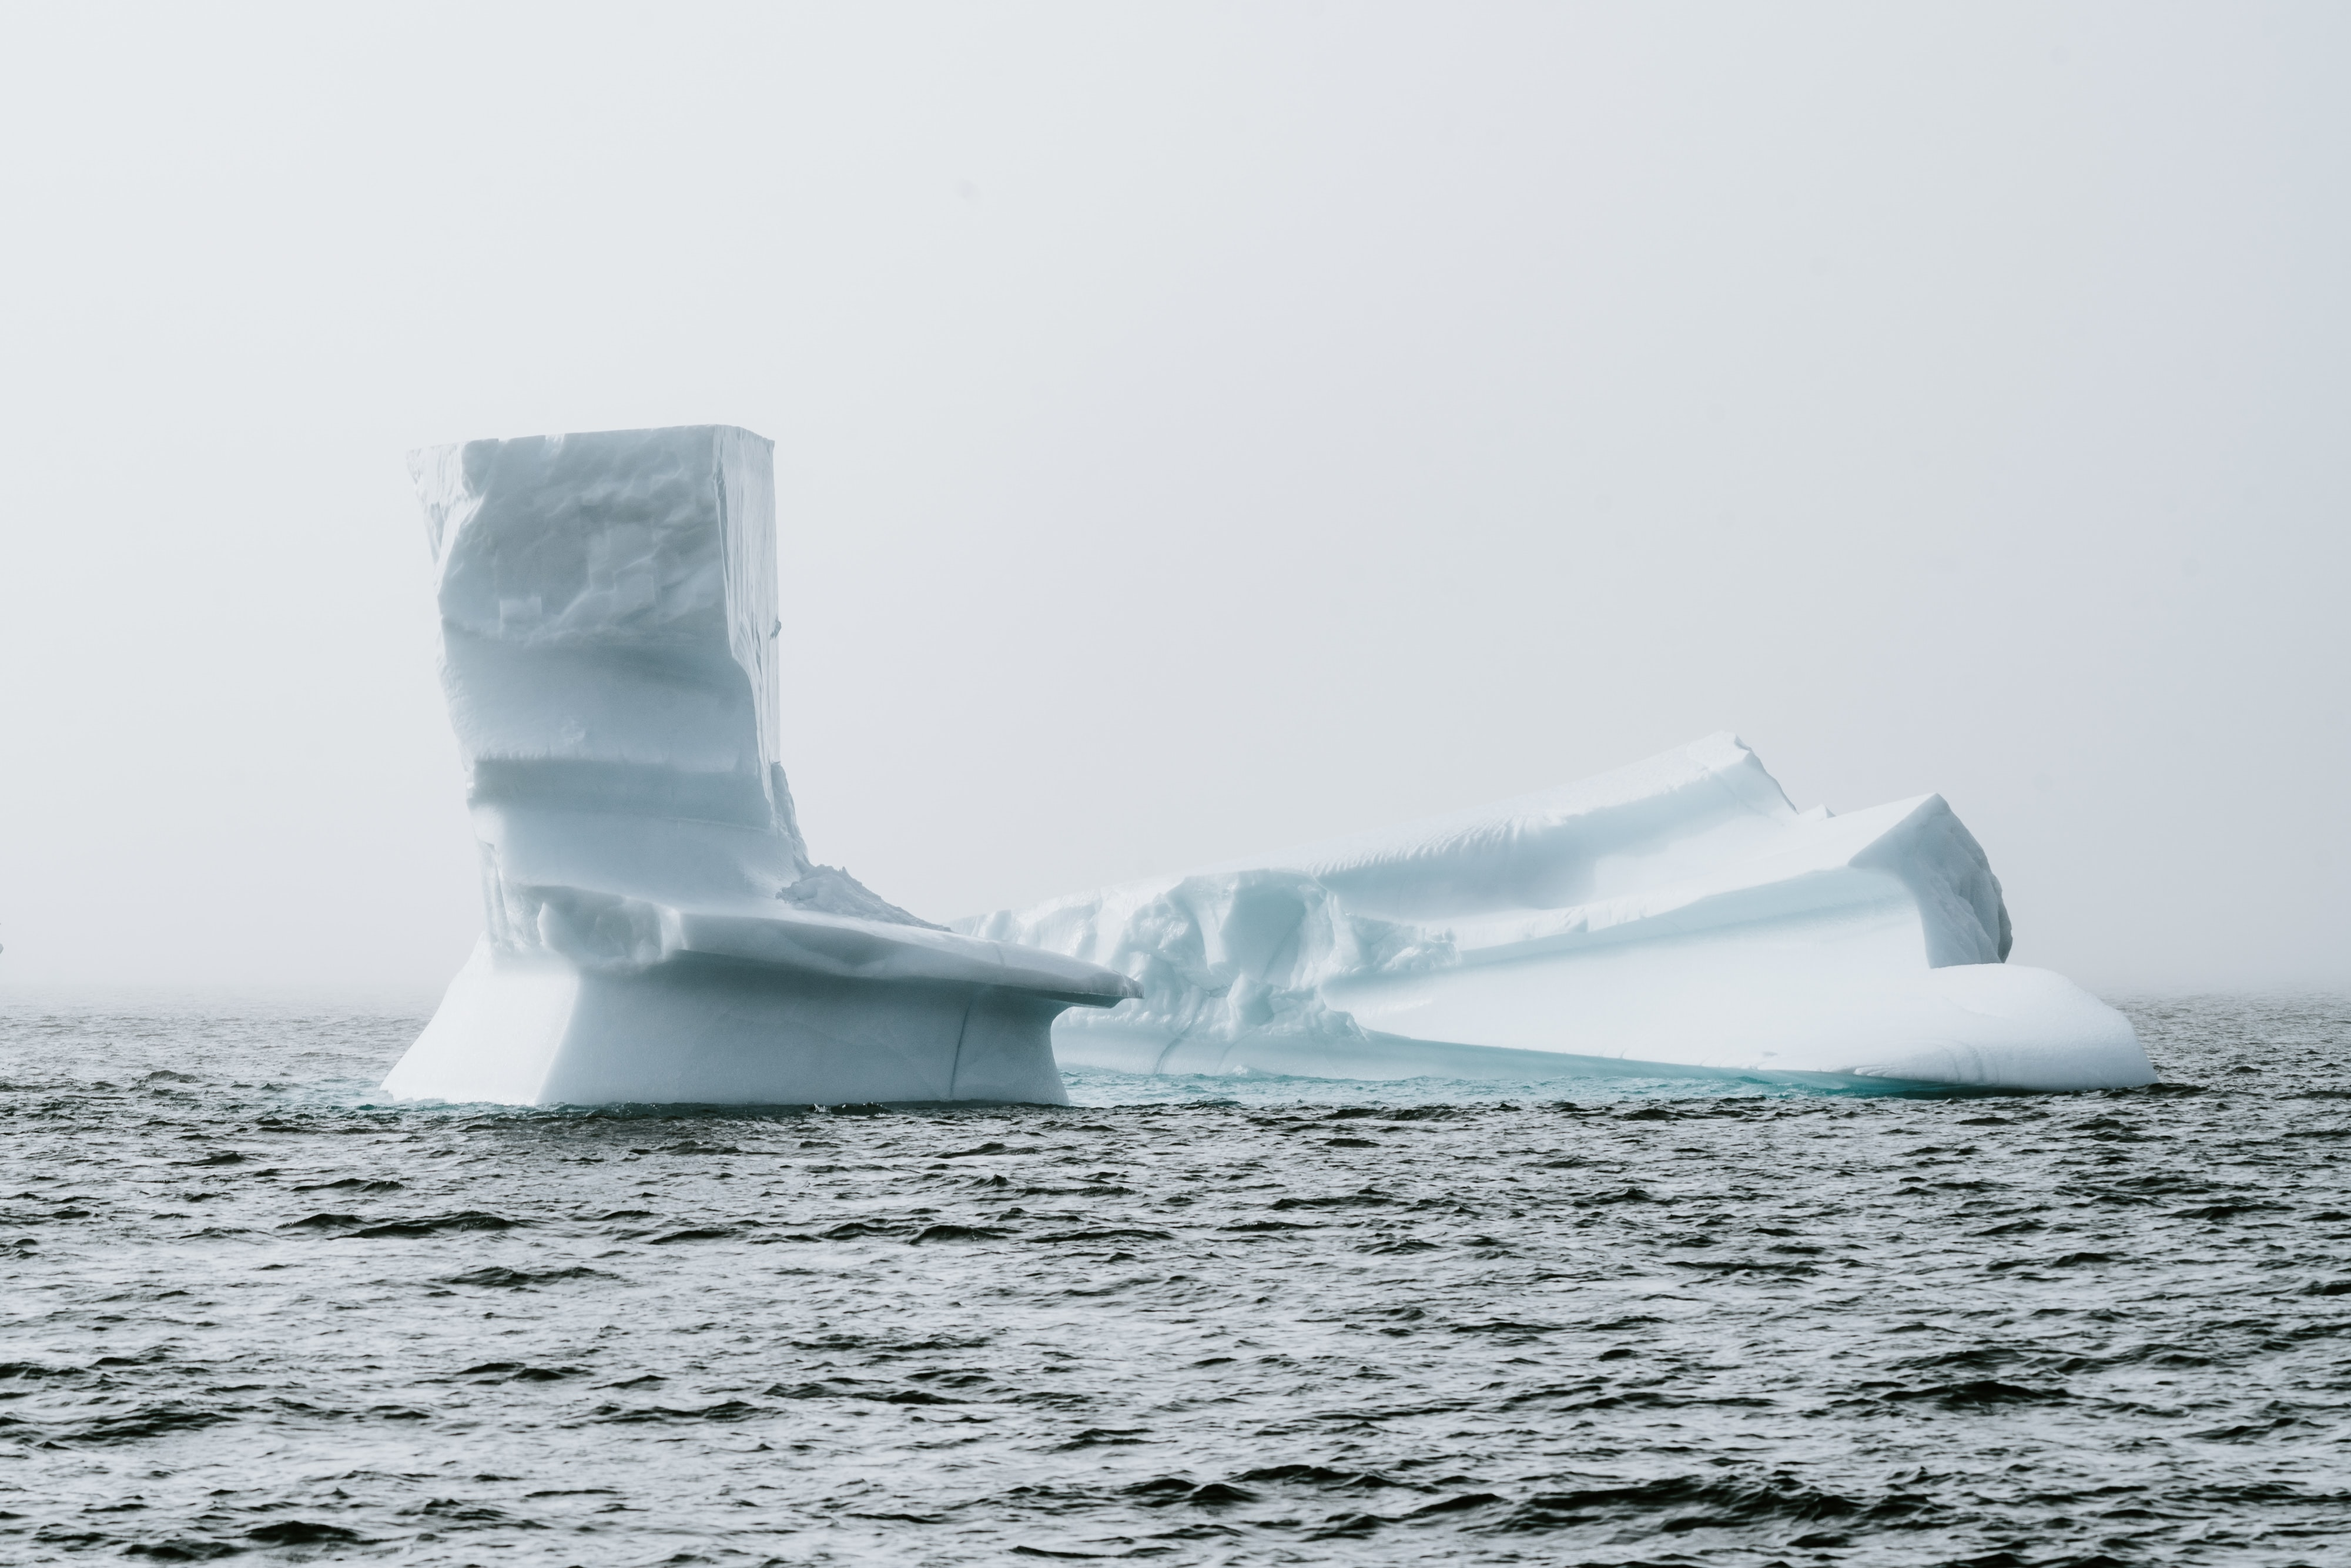 iceberg surrounded by body of water